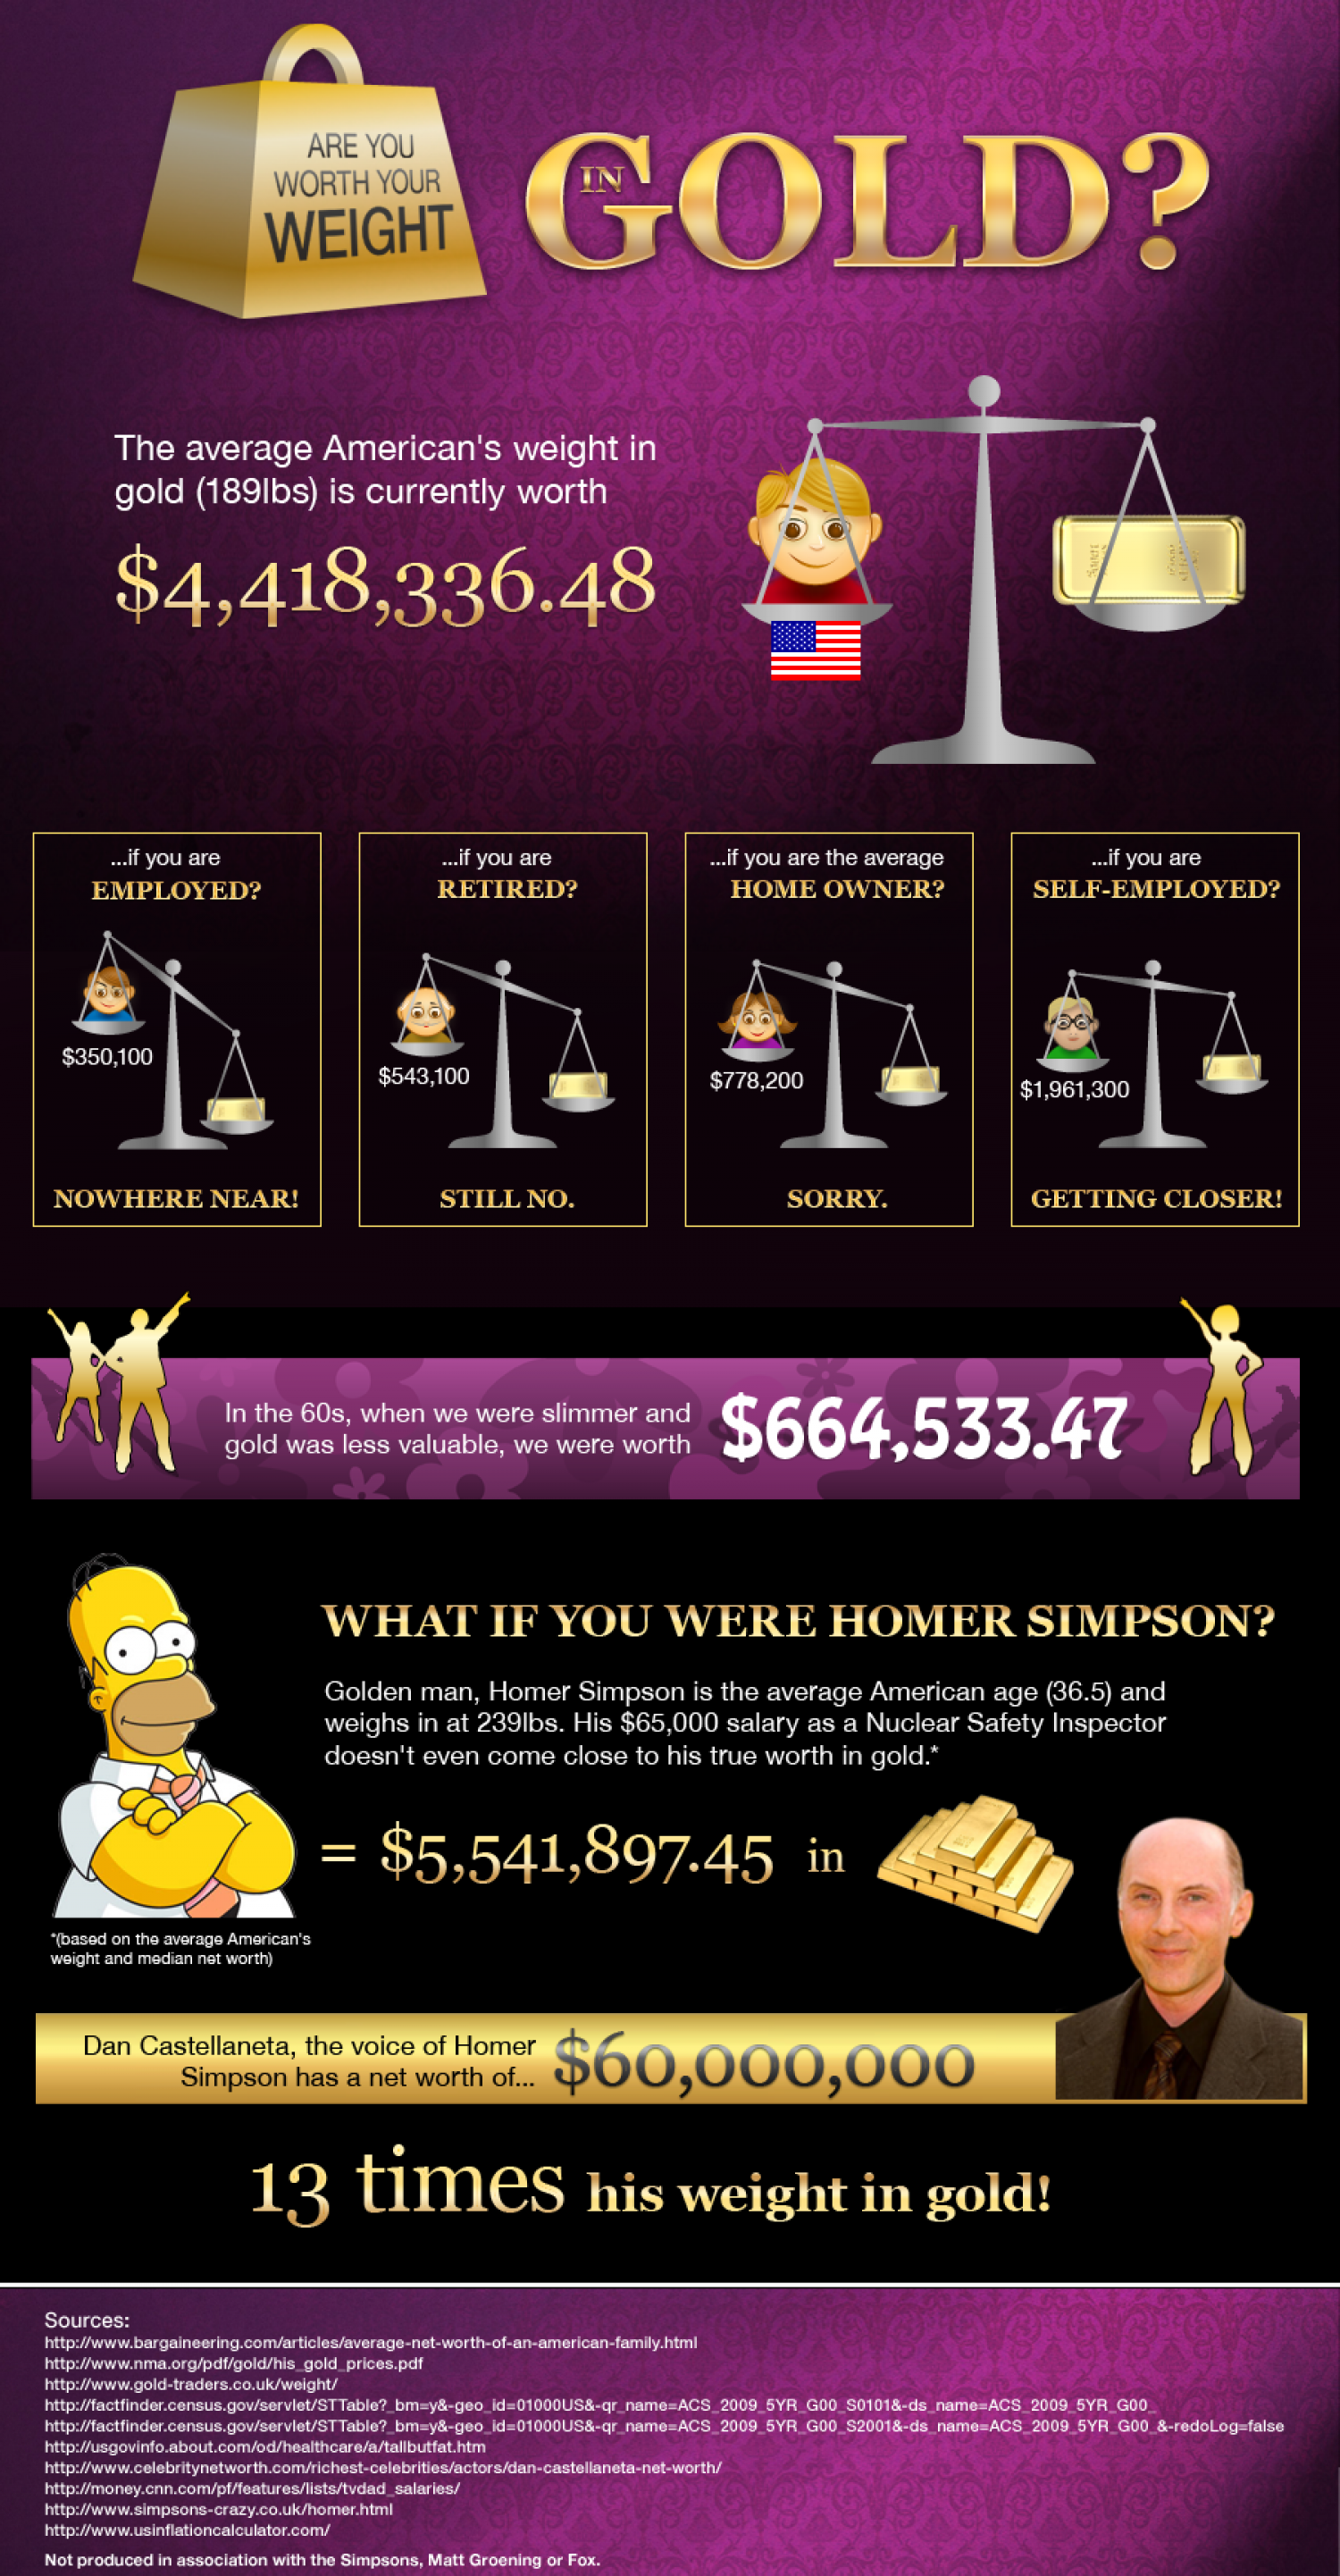 Are You Worth Your Weight in Gold? Infographic